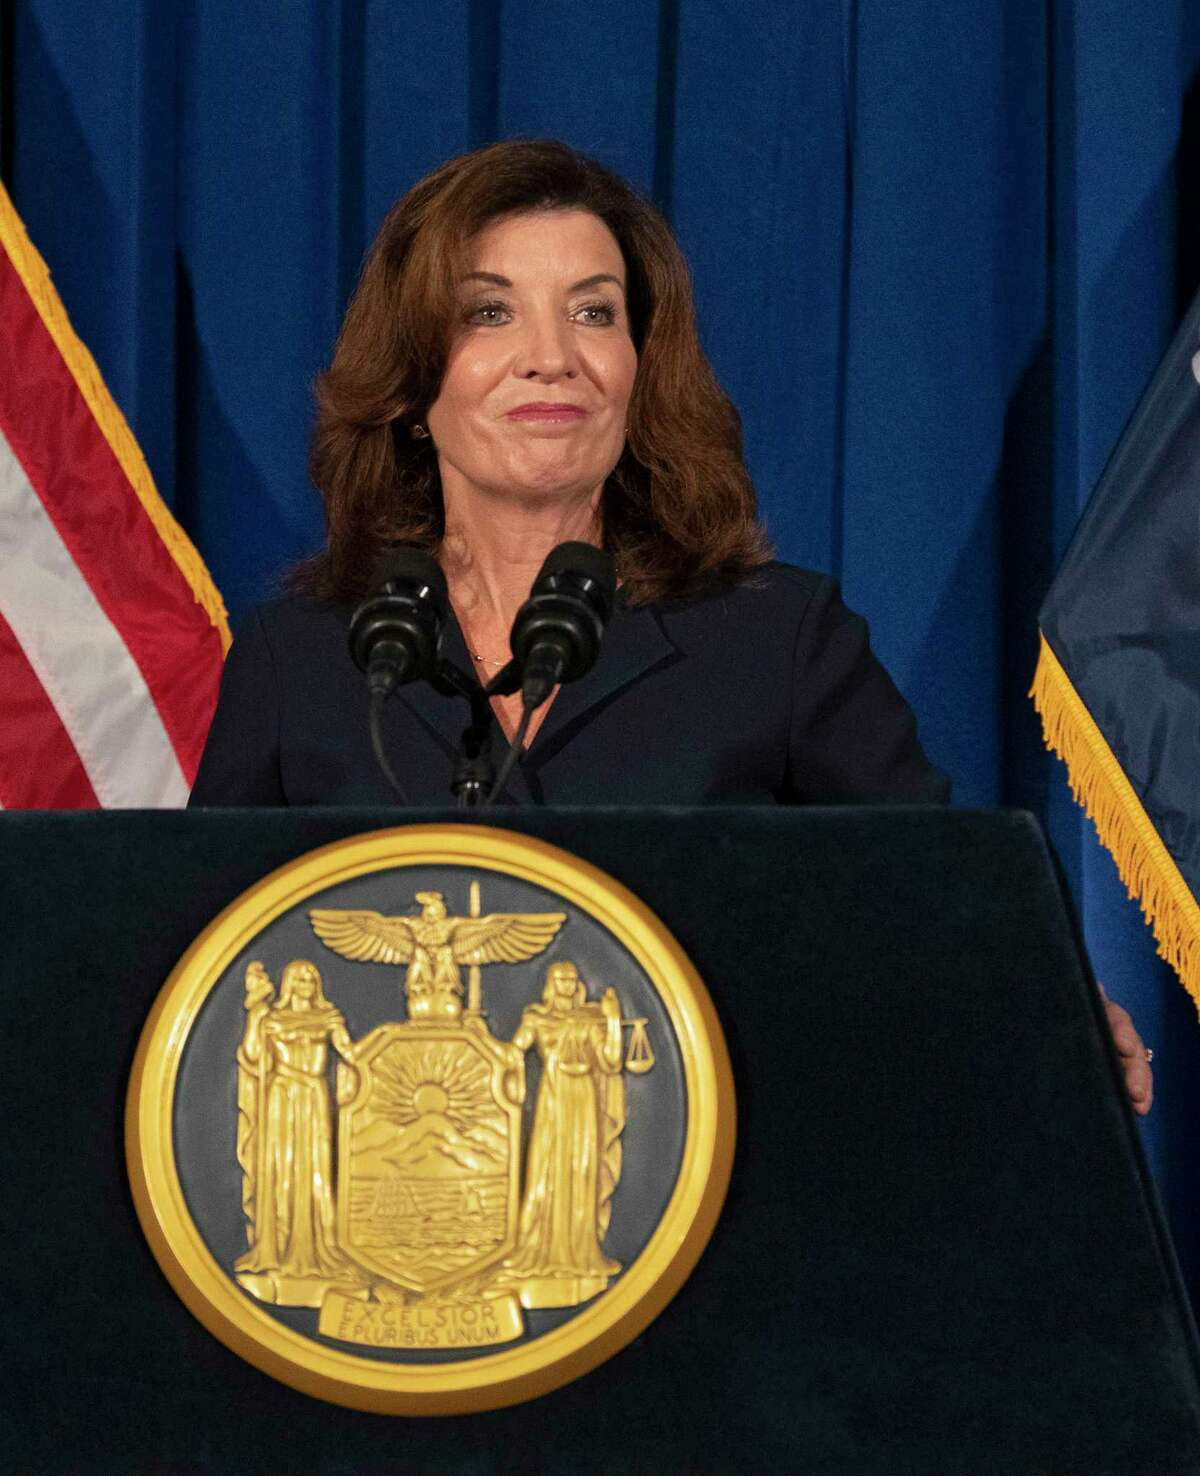 A federal lawsuit notes Gov. Kathy Hochul has credited God for creation of COVID-19 vaccines while her administration has fought against issuing religious exemptions for health care workers who do not want to get vaccinated.